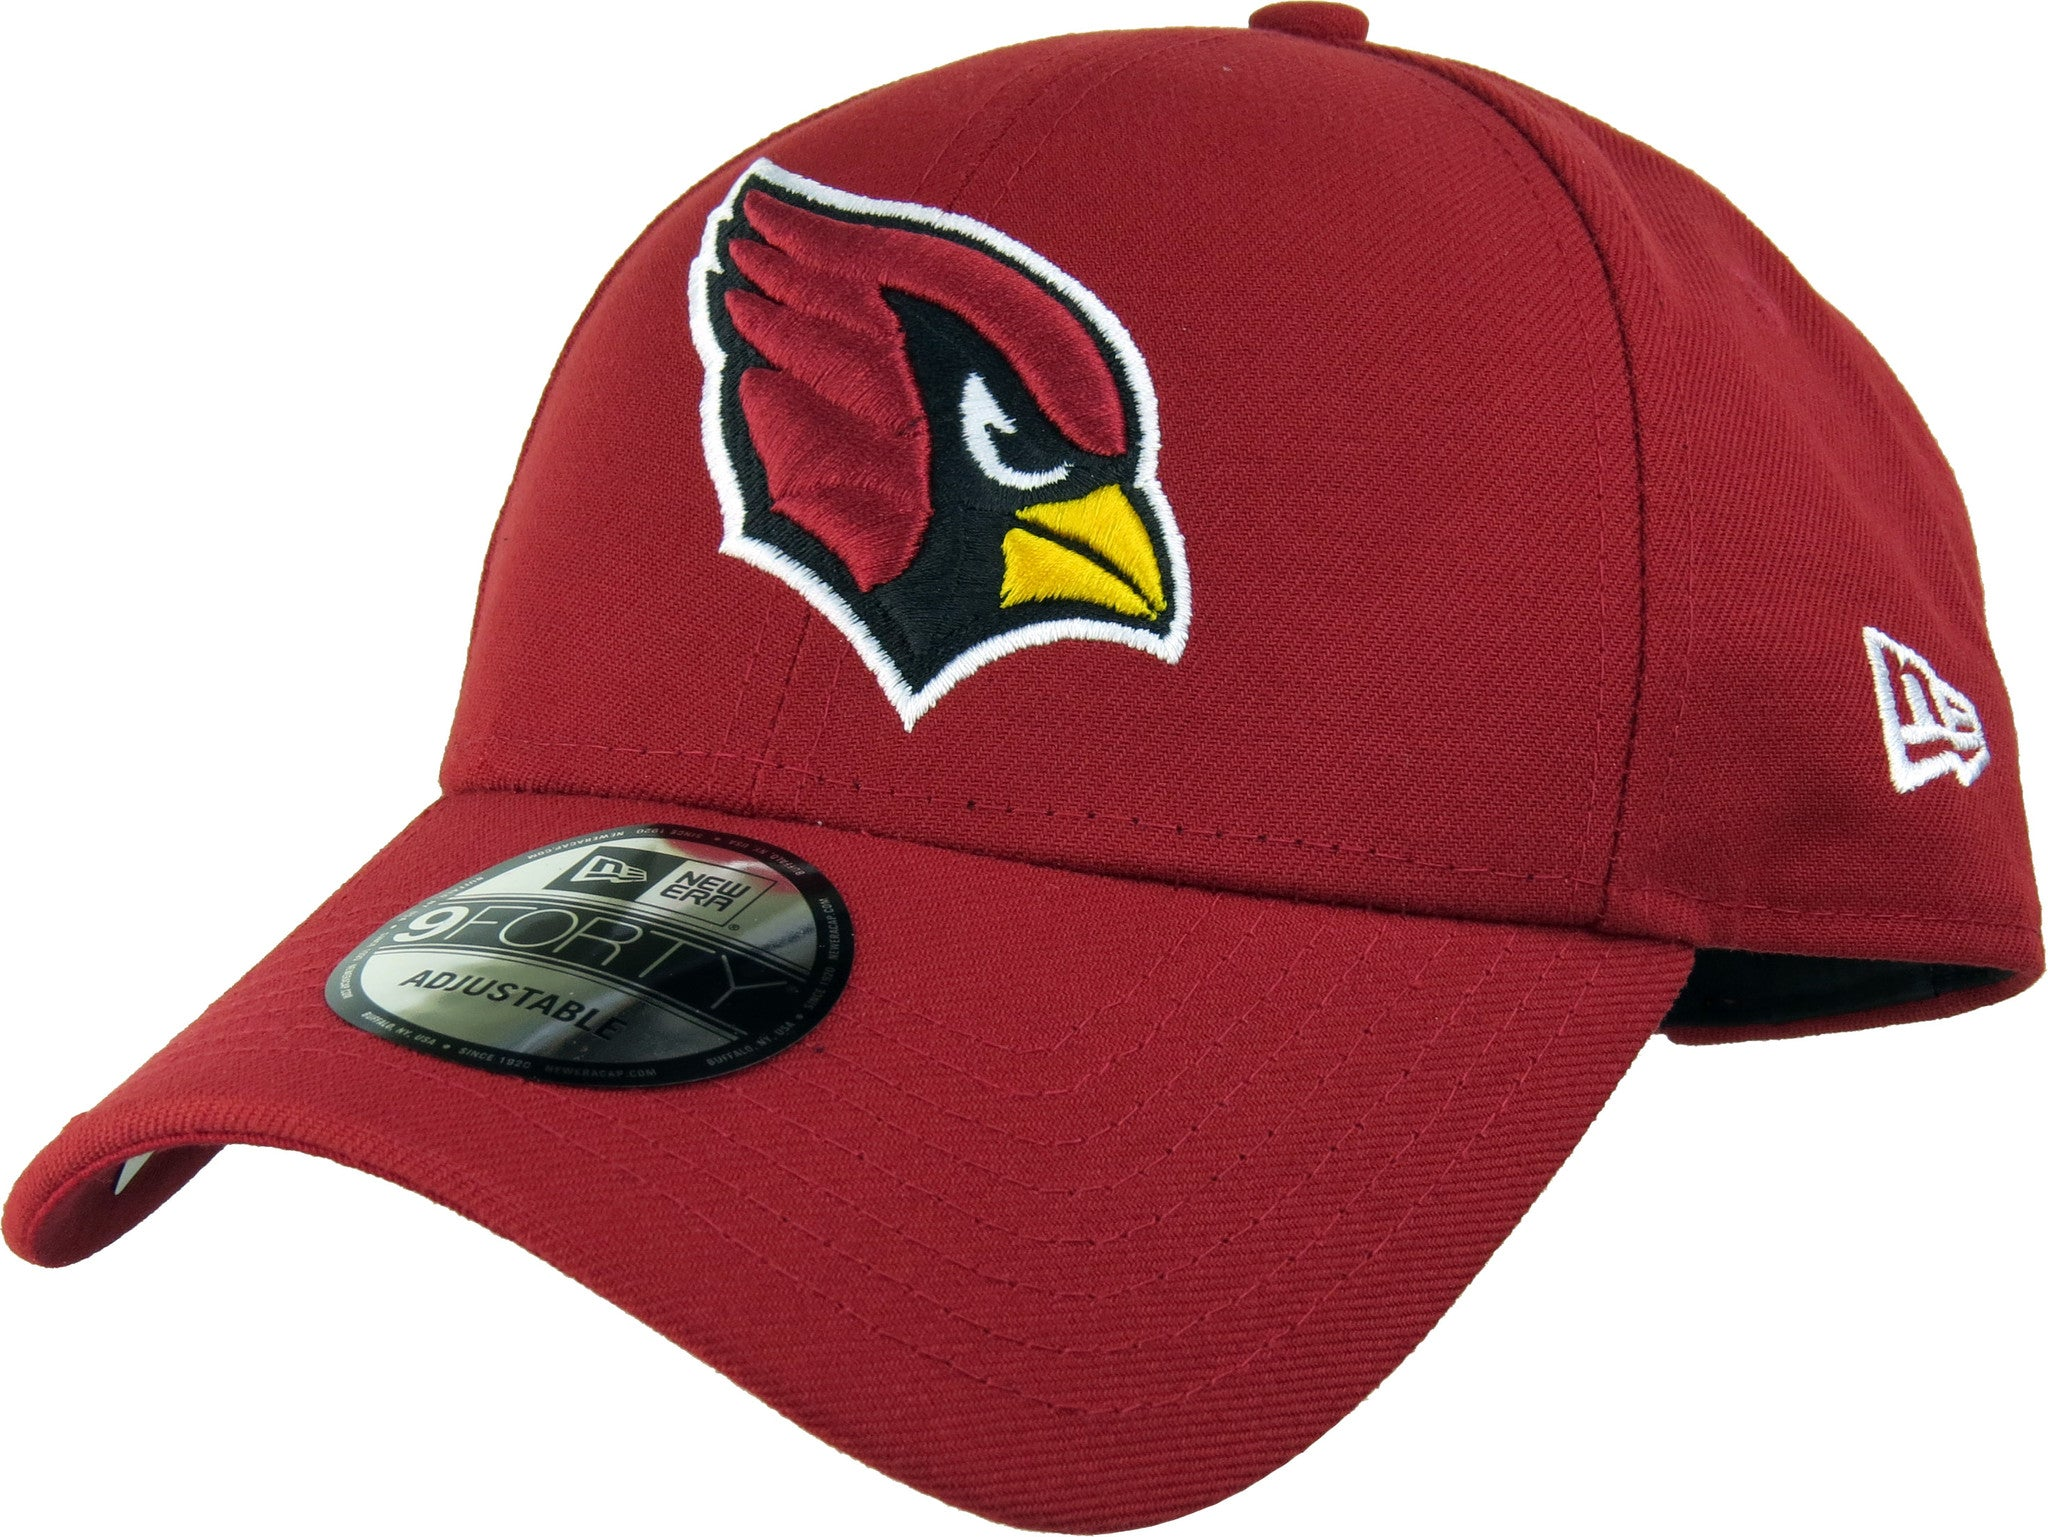 7f5ed0fe Arizona Cardinals New Era 940 The League NFL Adjustable Cap